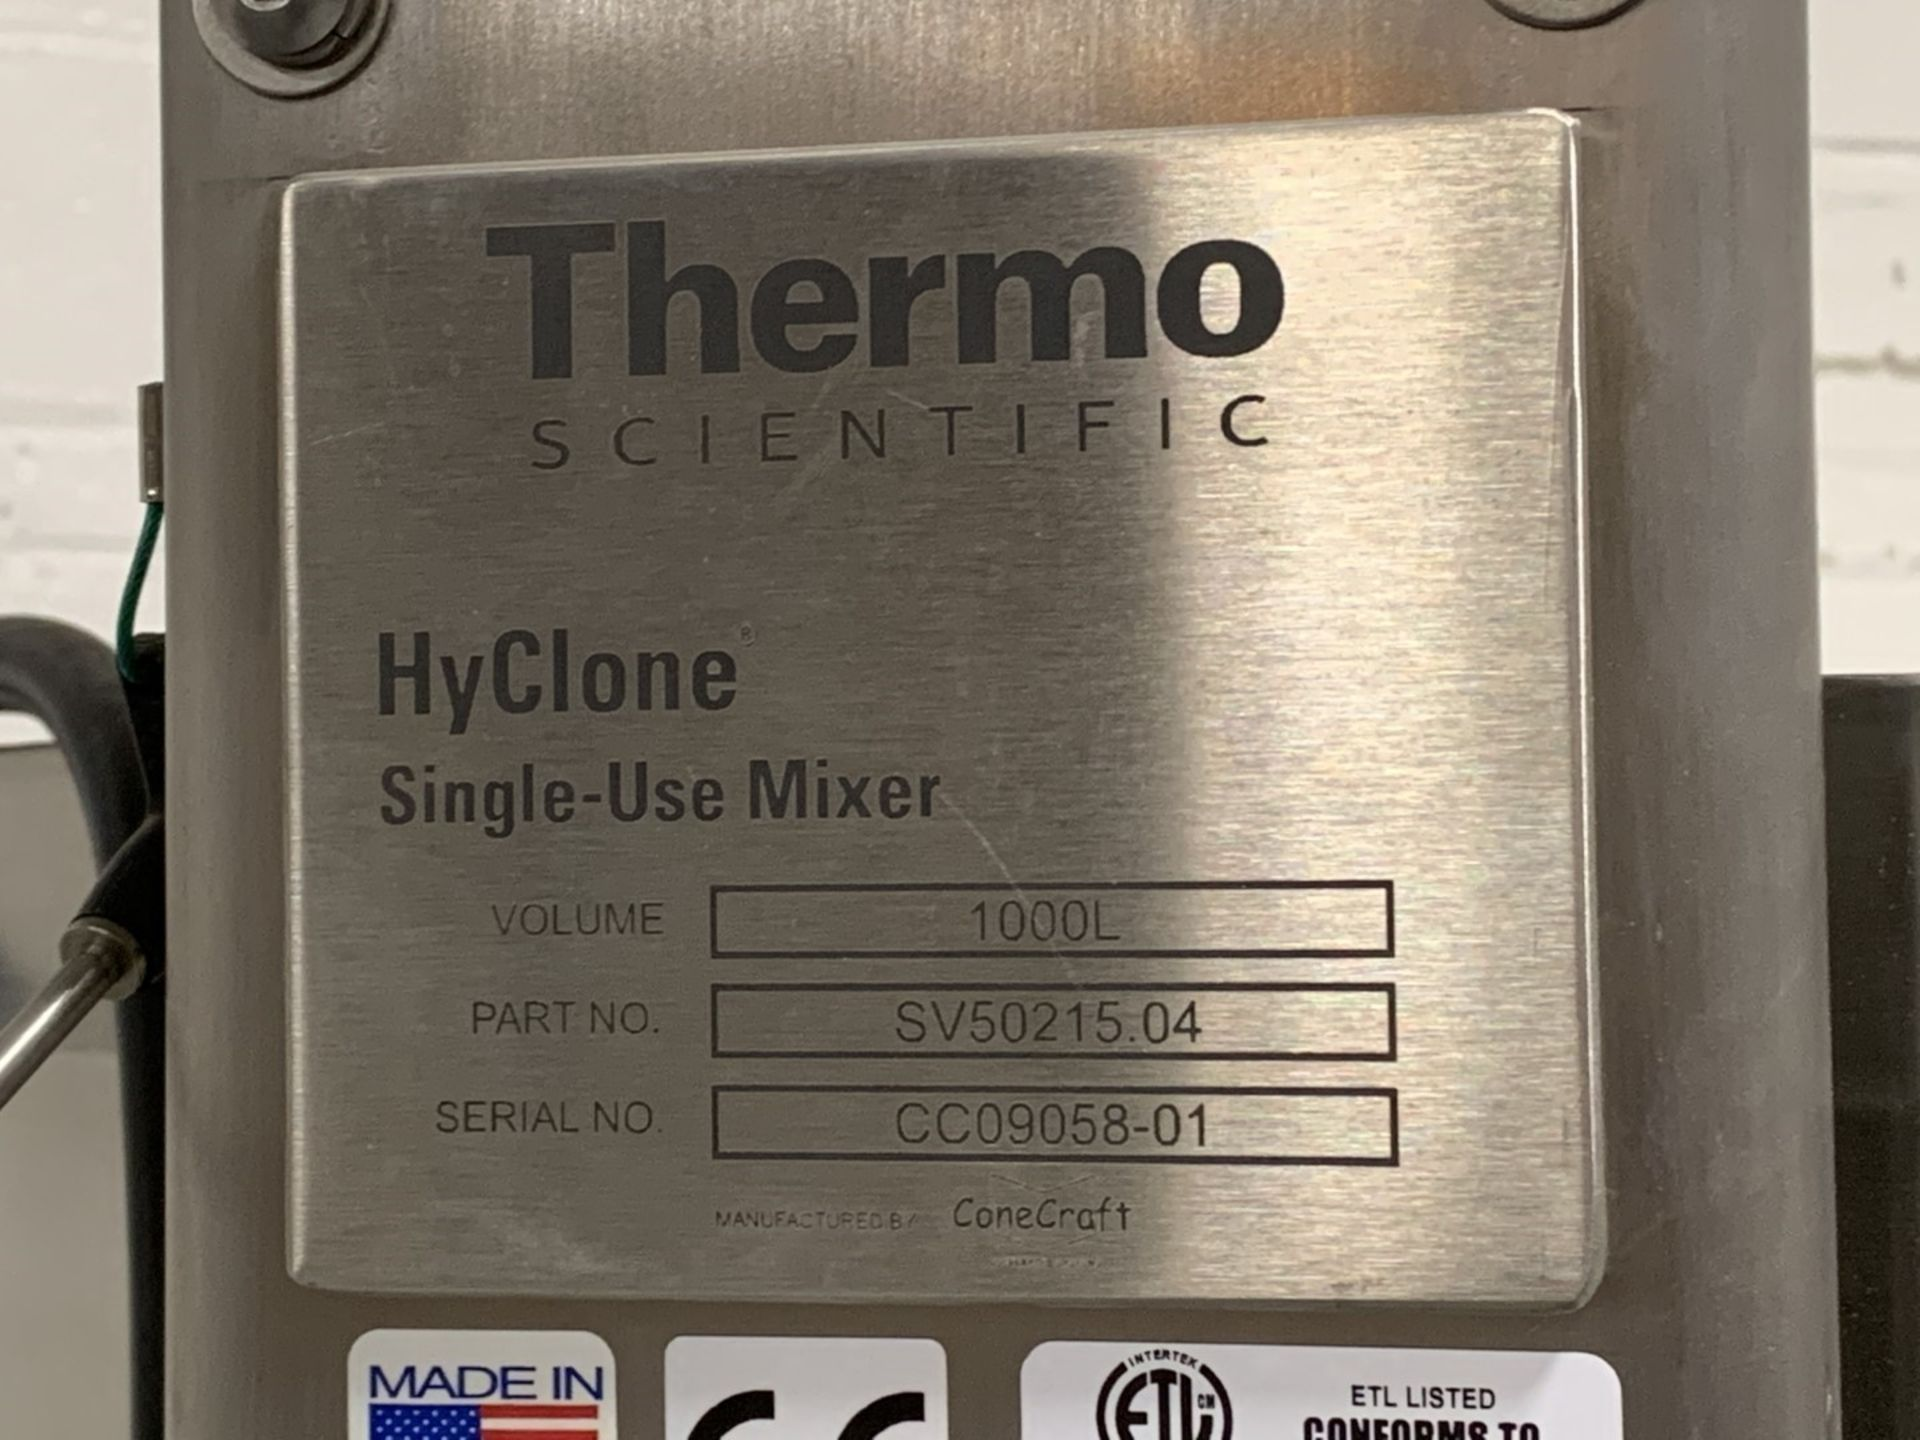 Lot 22 - Thermo Scientific HyClone single use mixer, stainless steel construction, 1000 liter capacity